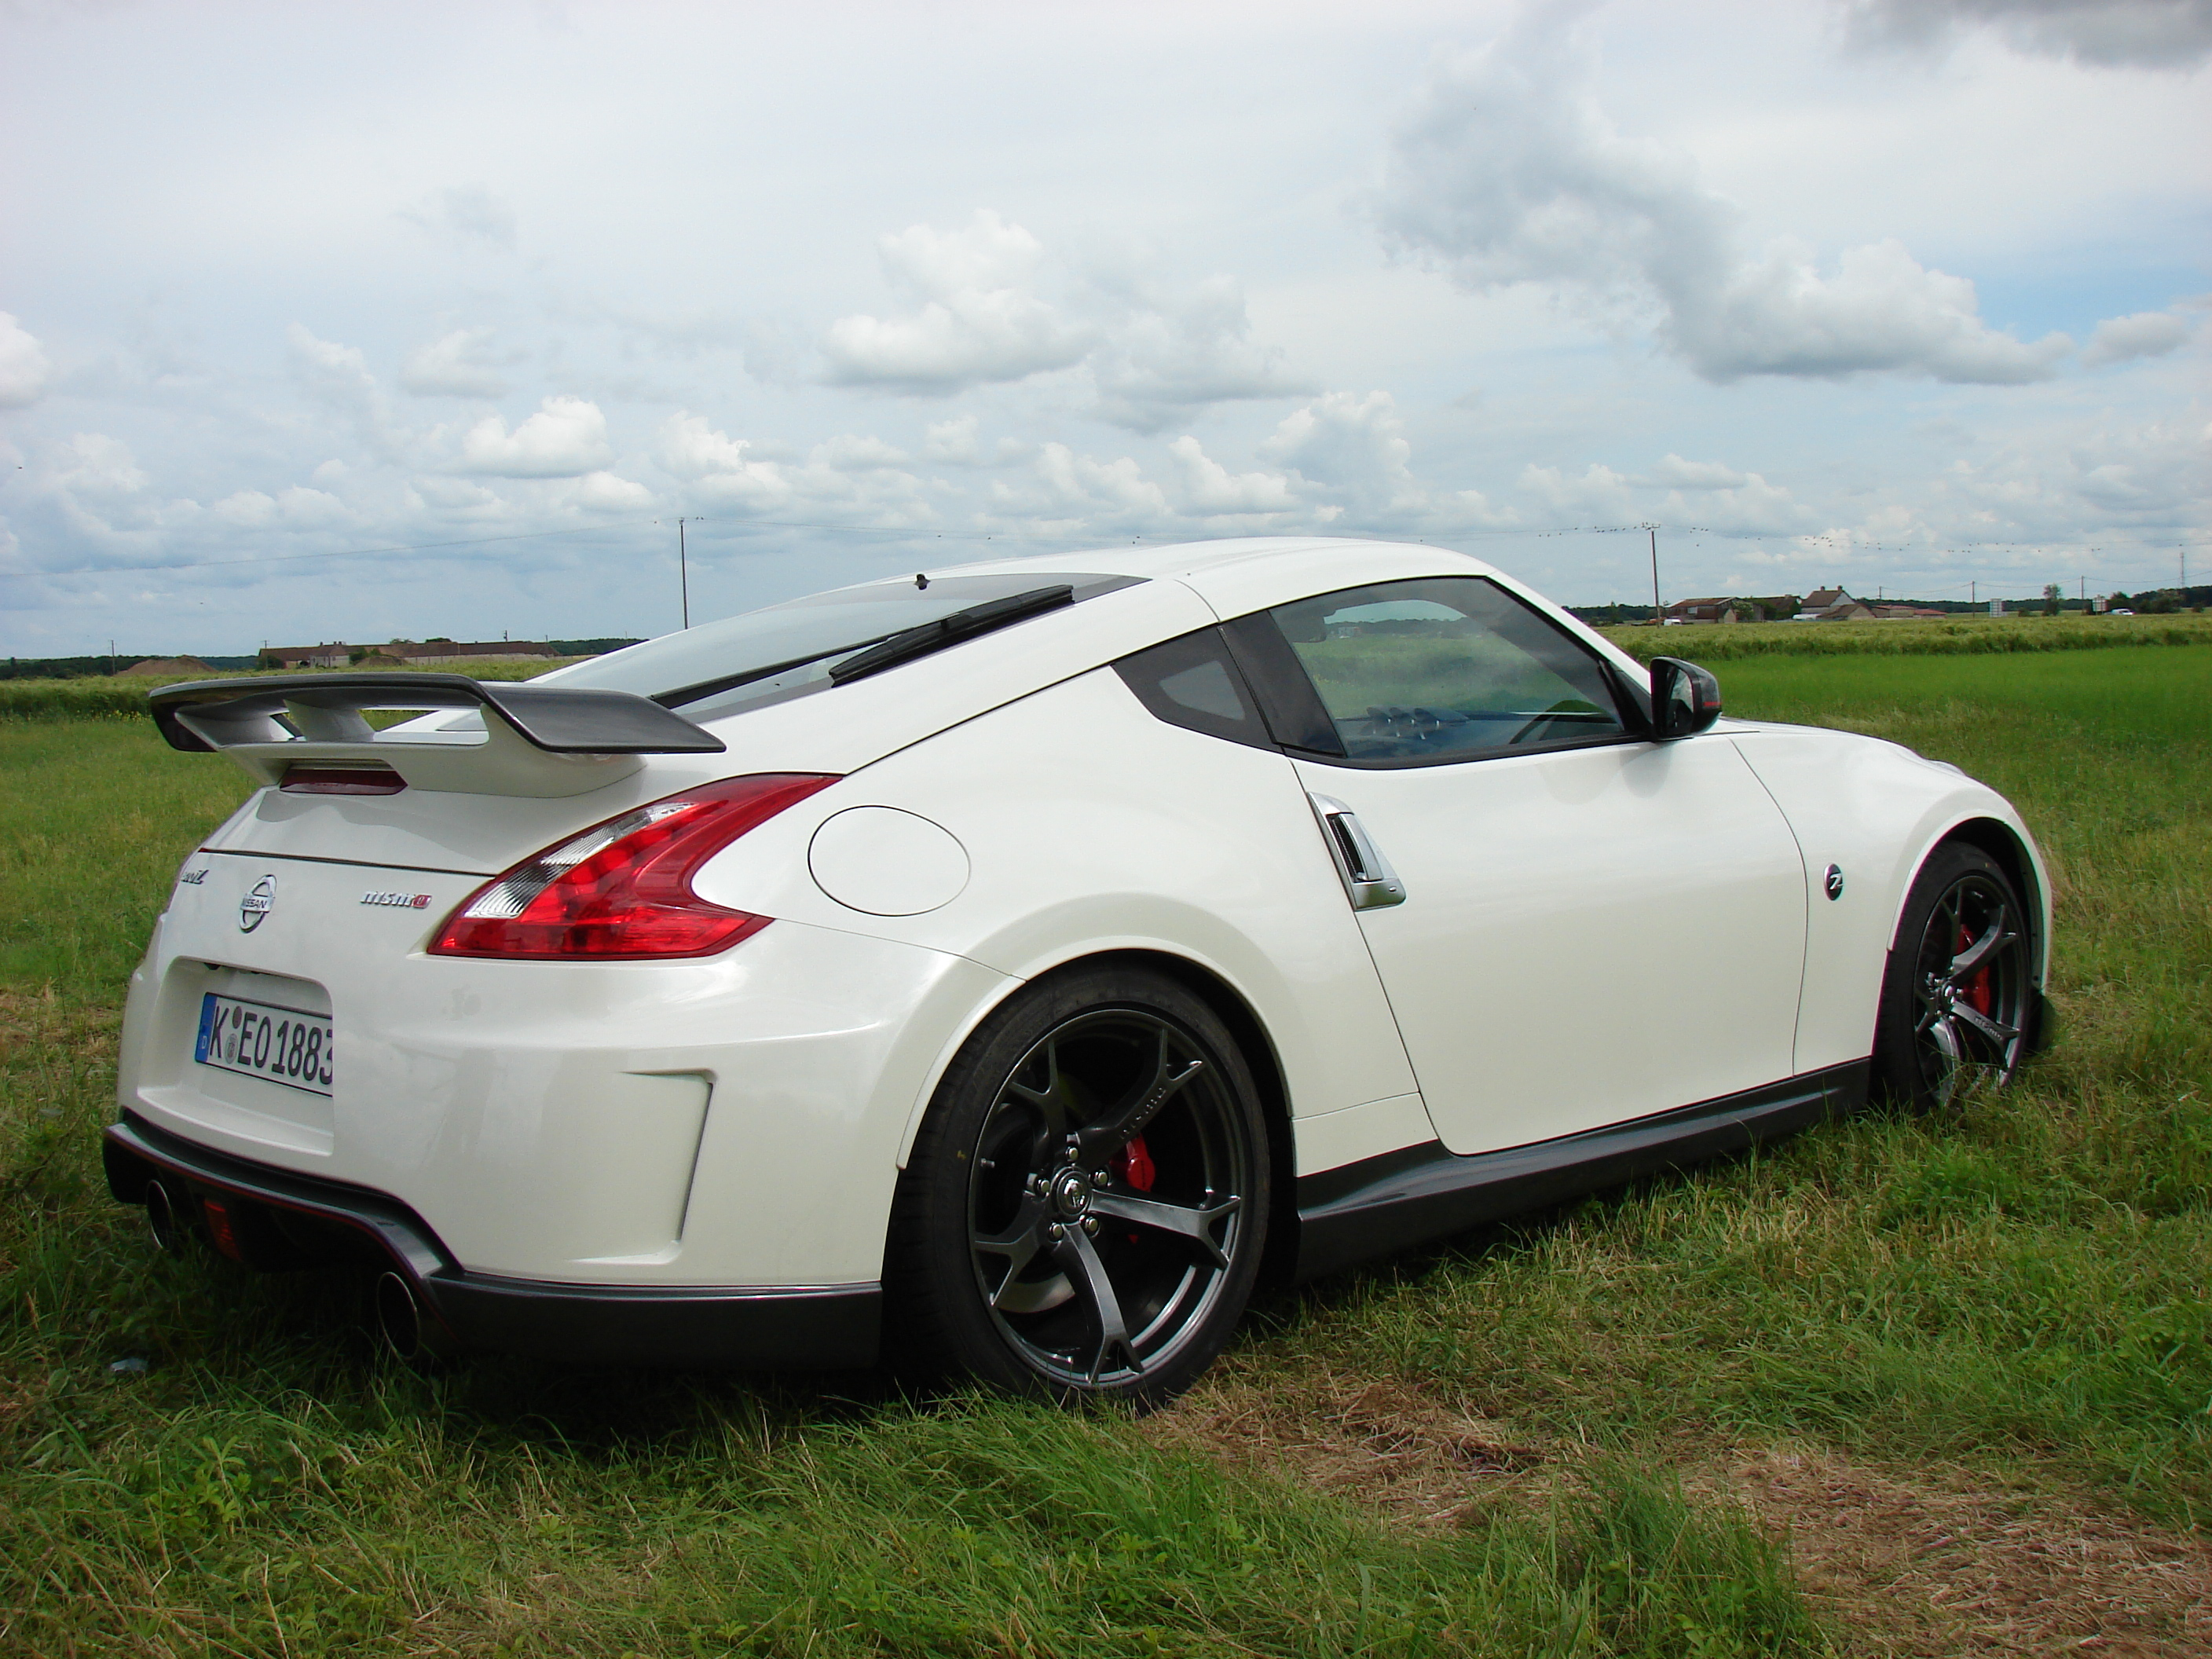 essai vid o nissan 370z nismo le pousse au crime. Black Bedroom Furniture Sets. Home Design Ideas